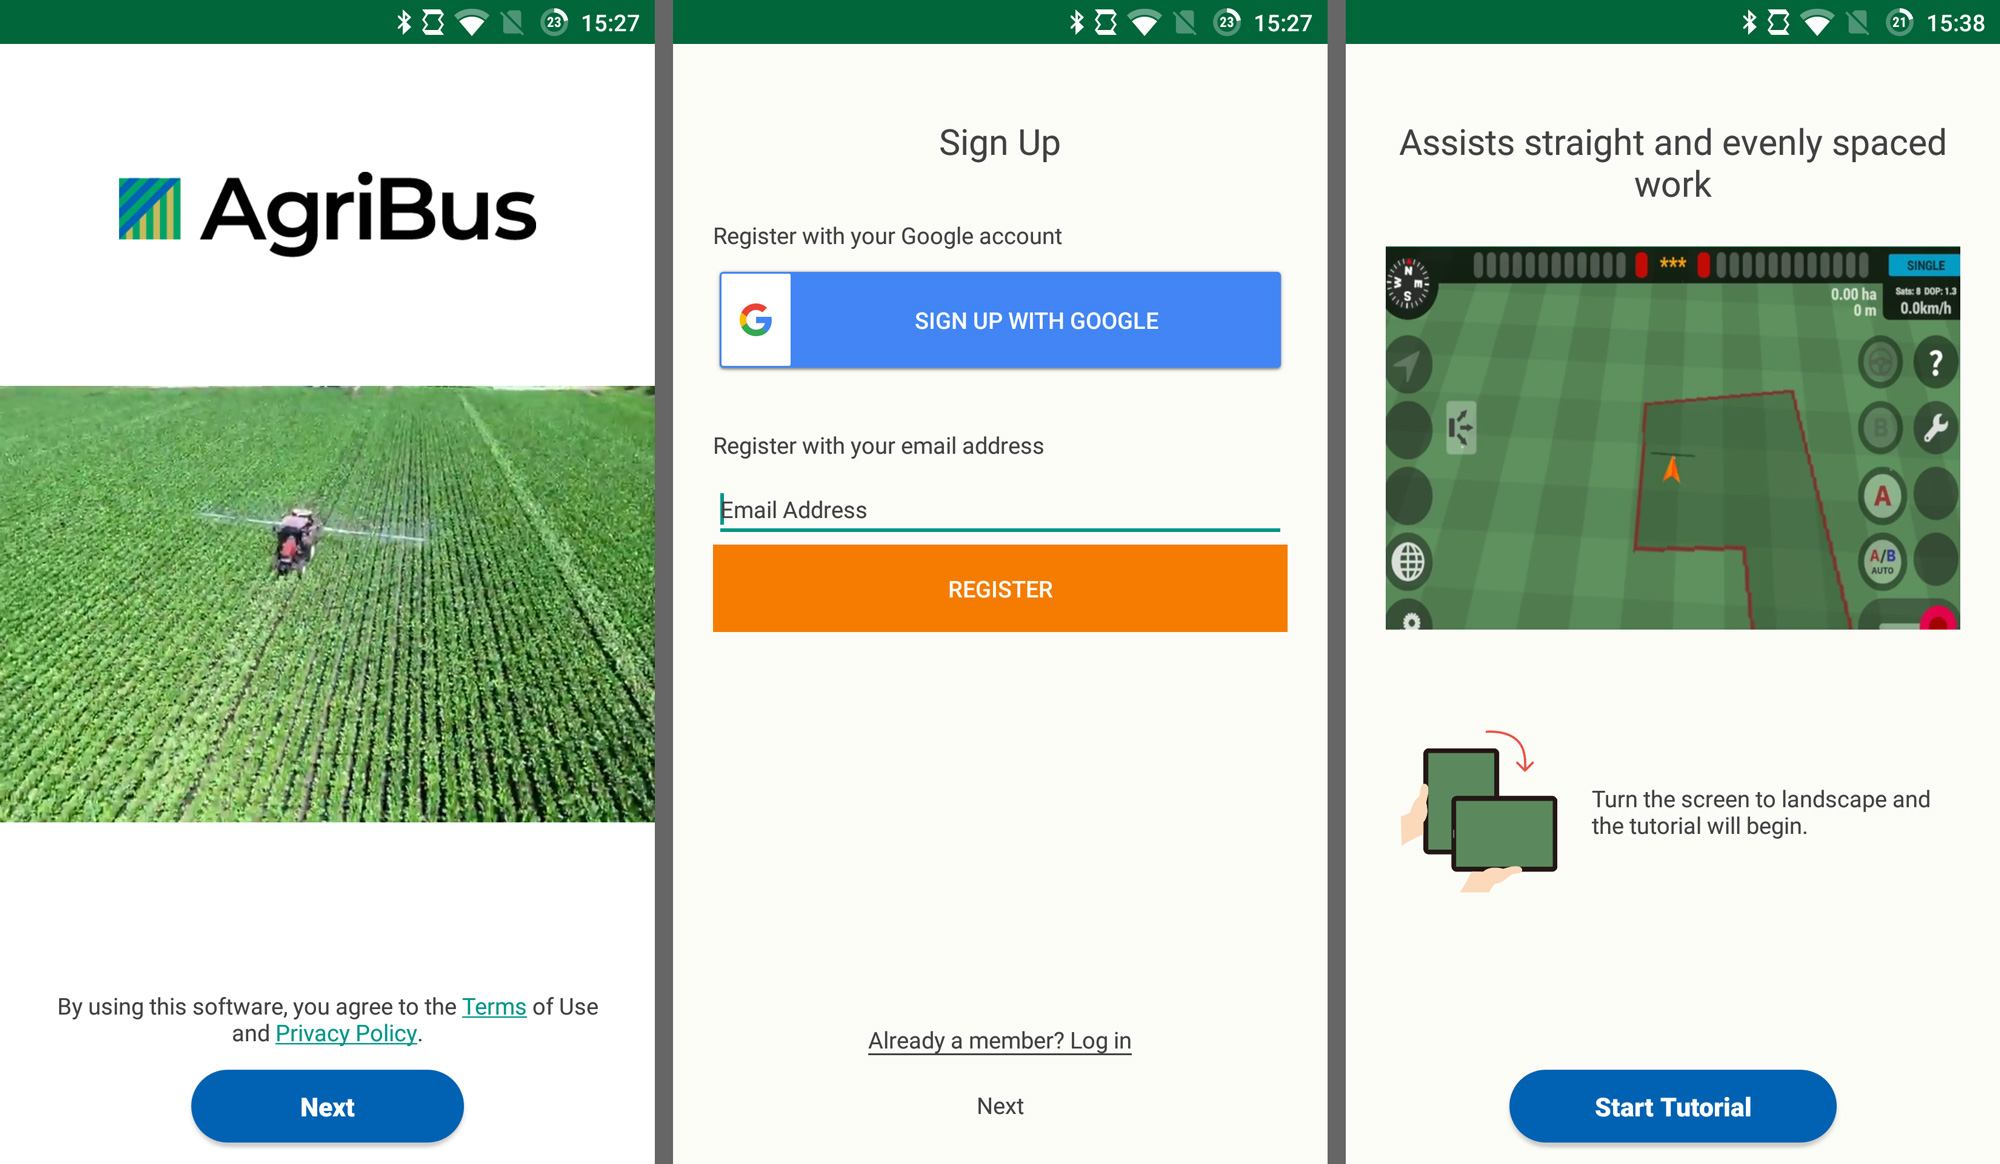 Update of the AgriBus-NAVI application (v3.9.6)